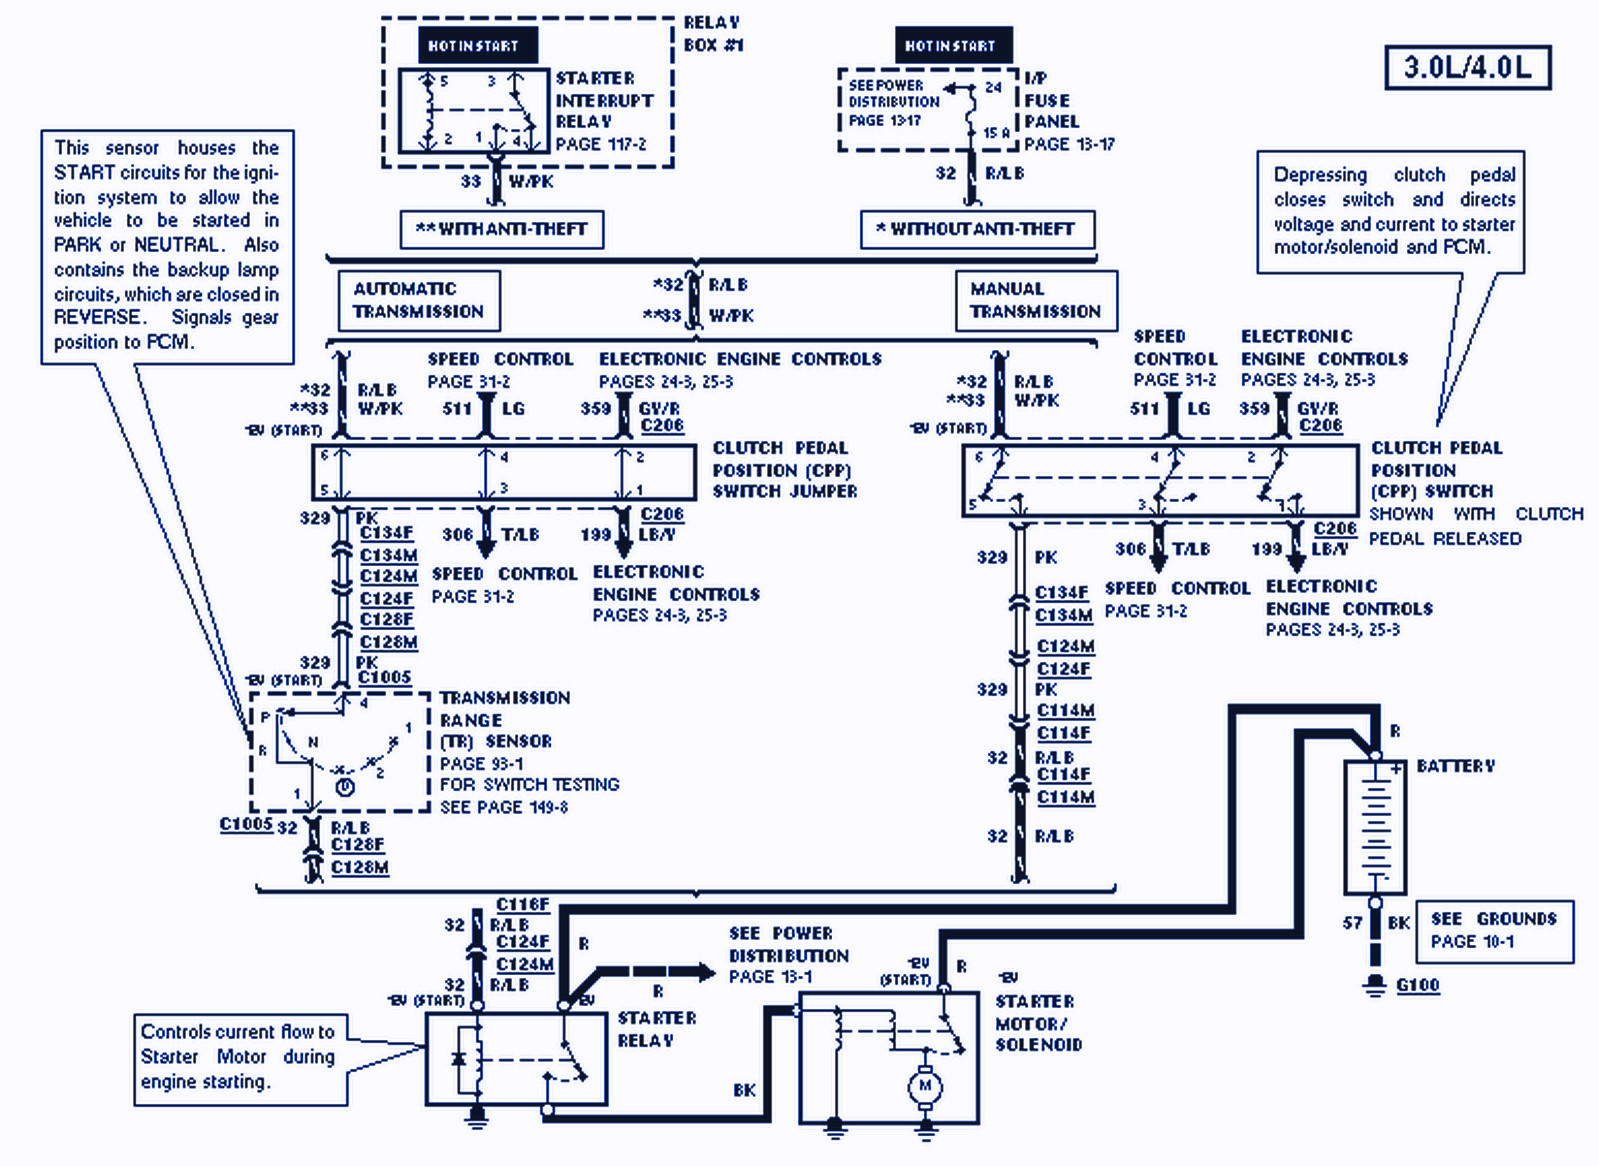 hight resolution of 1995 mercury tracer engine diagram wiring diagram1984 mercury tracer wiring diagram best wiring library1995 mercury tracer